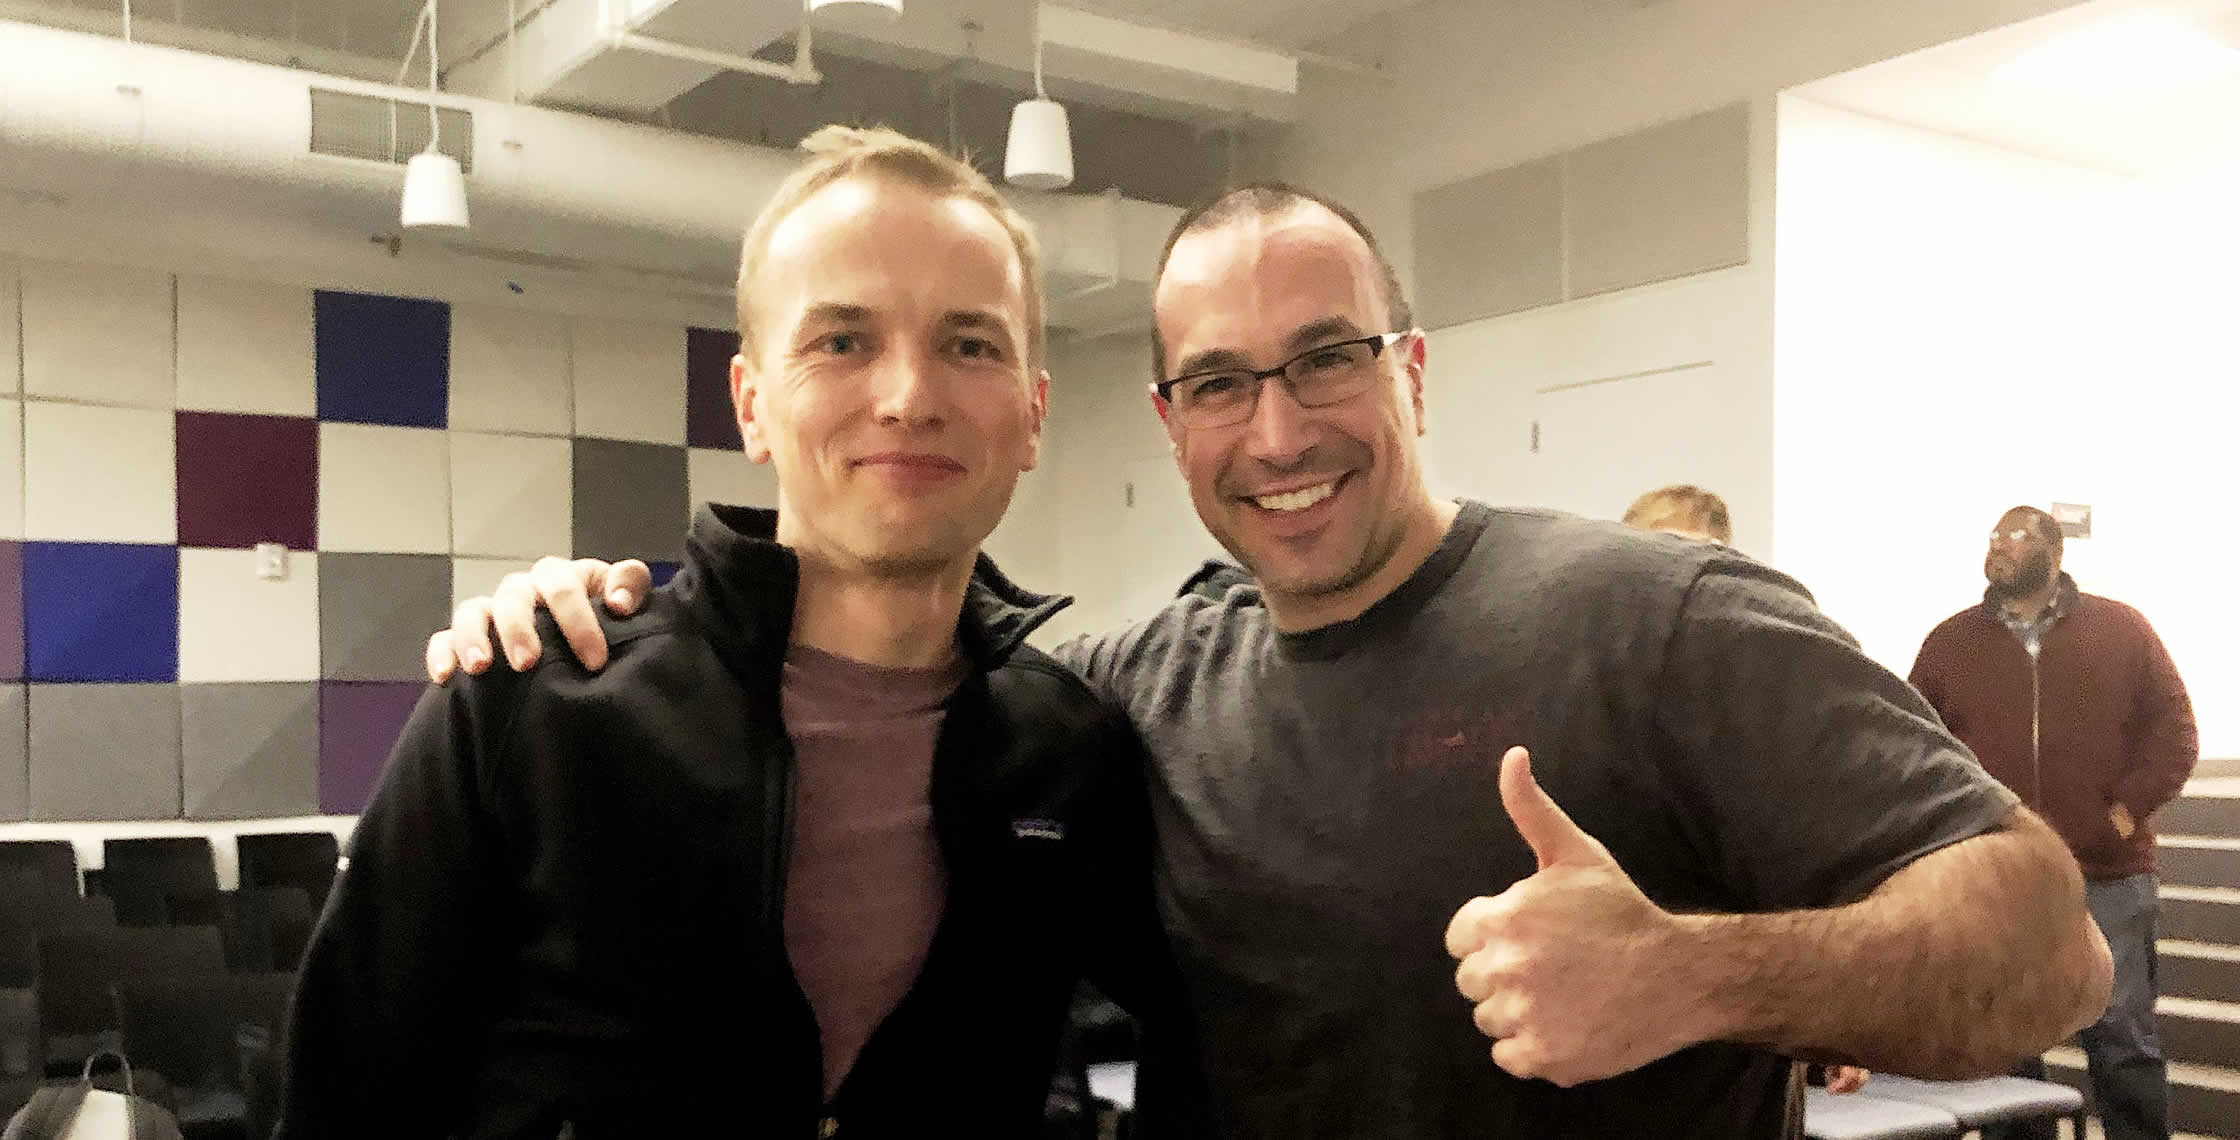 Ben Nadel at the Angular NYC Meetup (Jan. 2019) with: Igor Minar